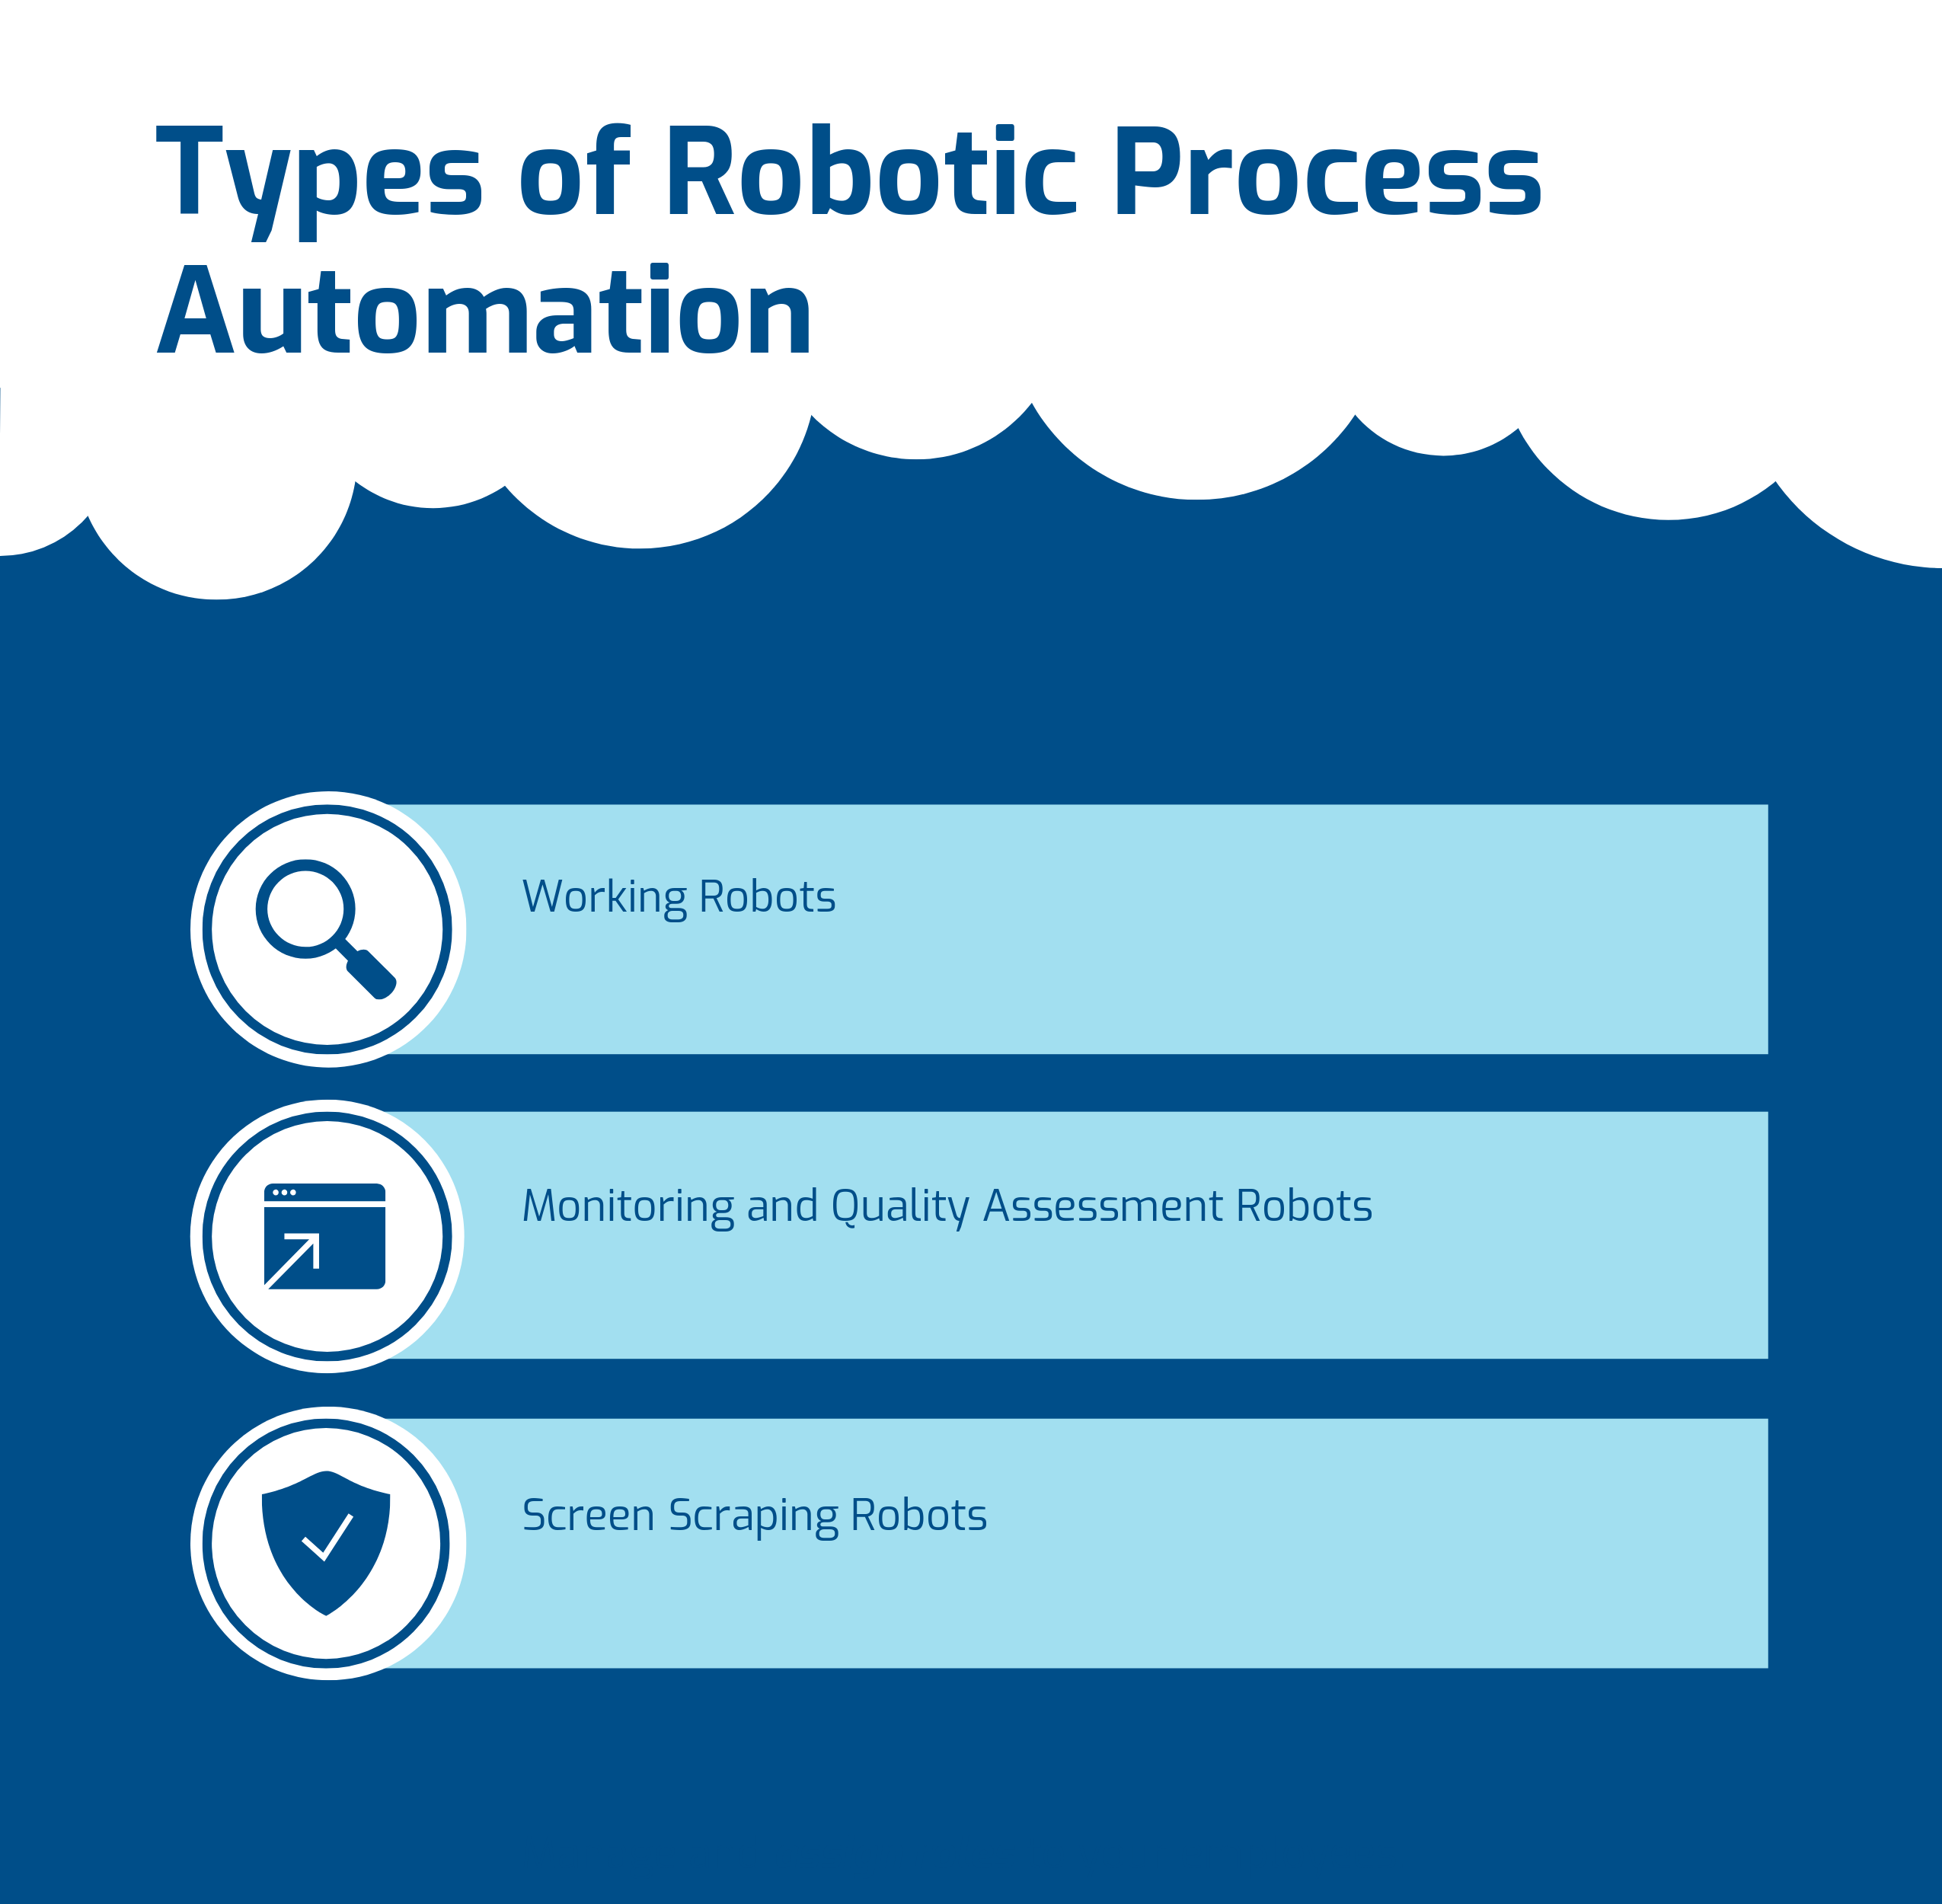 What are the Types of Robotic Process Automation